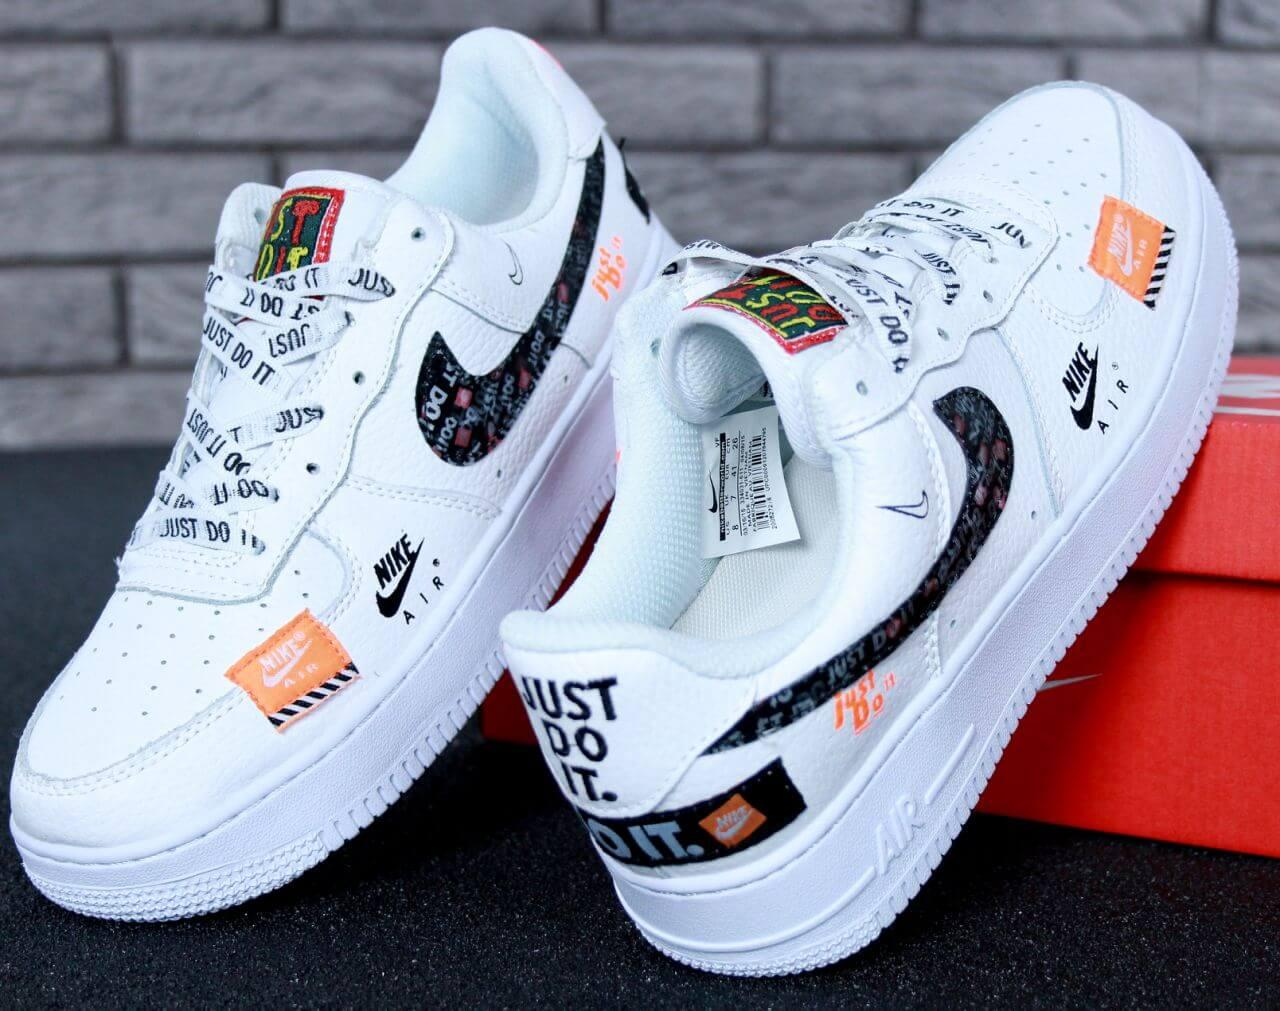 28127bee Кроссовки Nike Air Force 1 Low Just Do It Pack White купить в Киеве ...